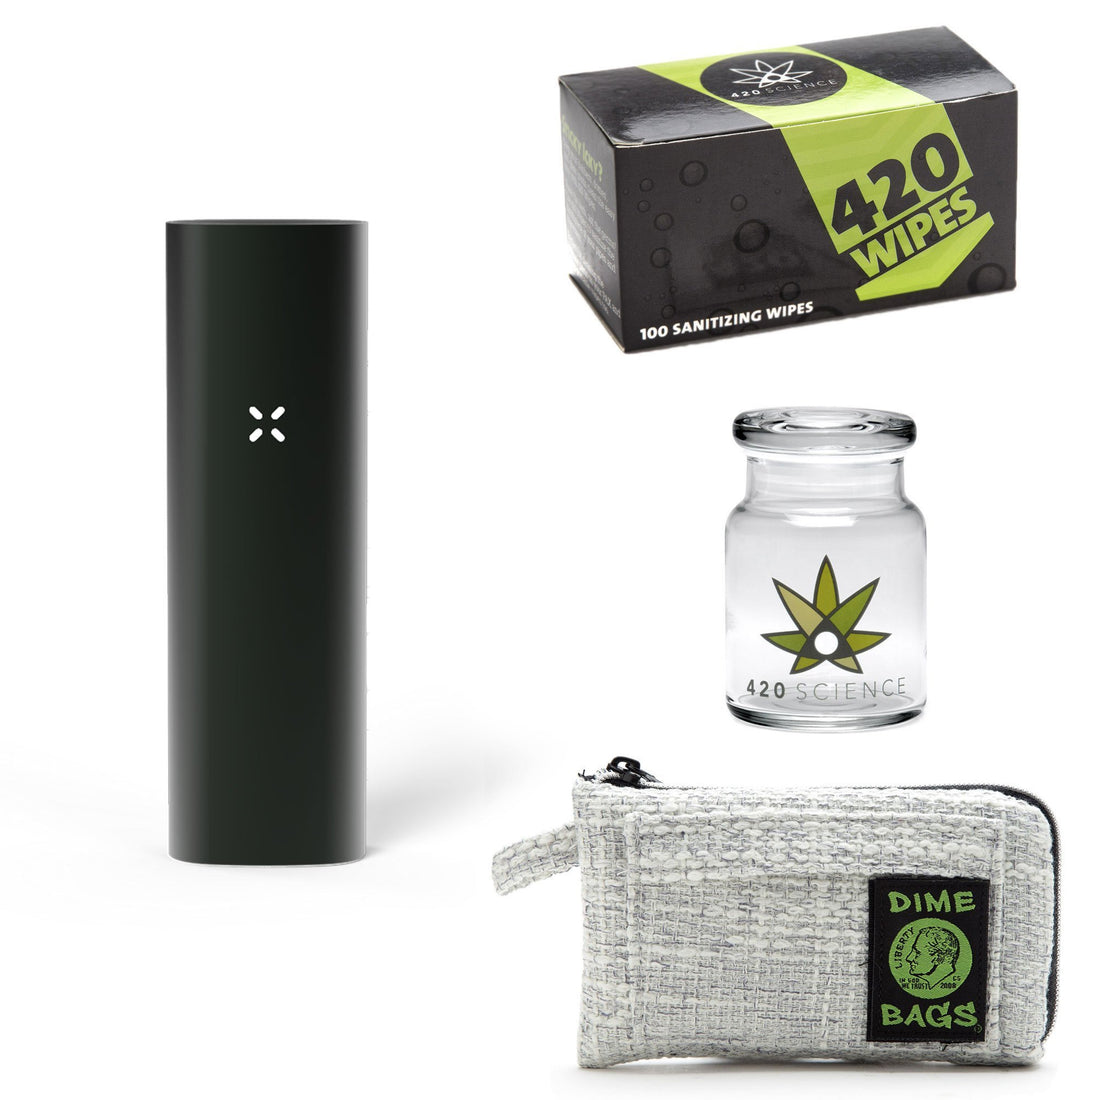 PAX 3 Vaporizer Complete Kit Bundle